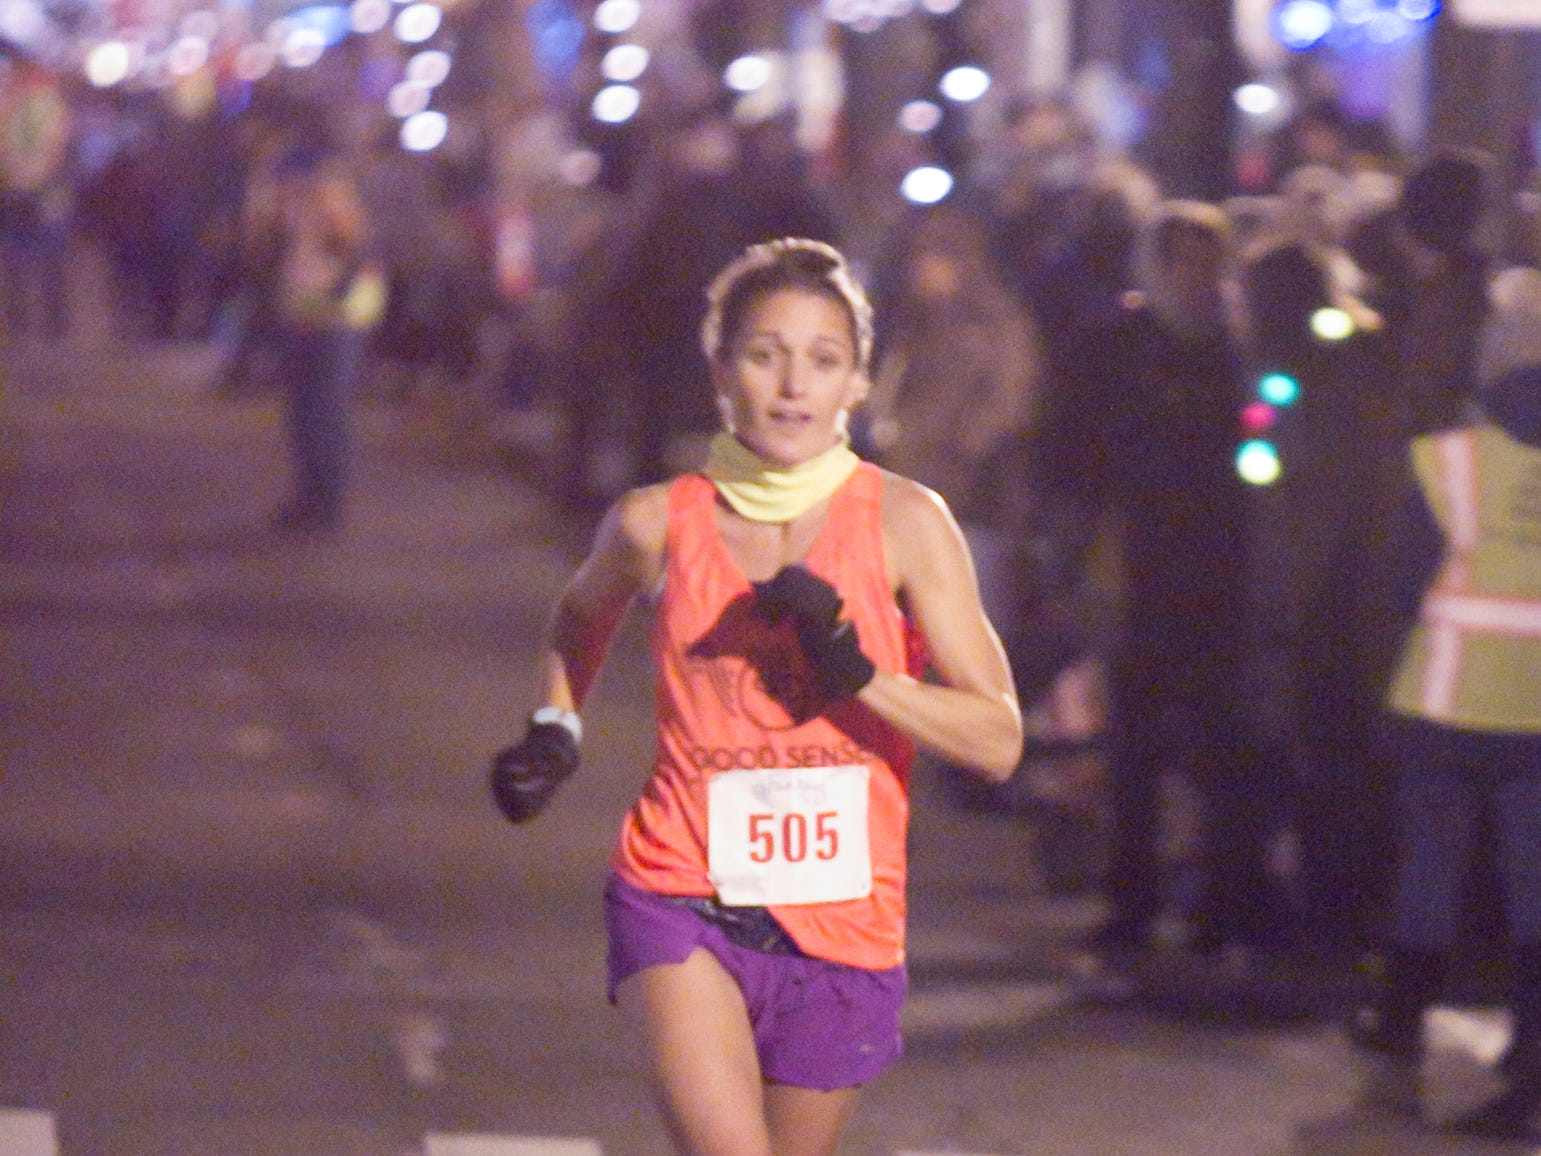 Sarah Boyle was the first woman finisher in the Fantasy 5k Friday, Nov. 23, 2018.